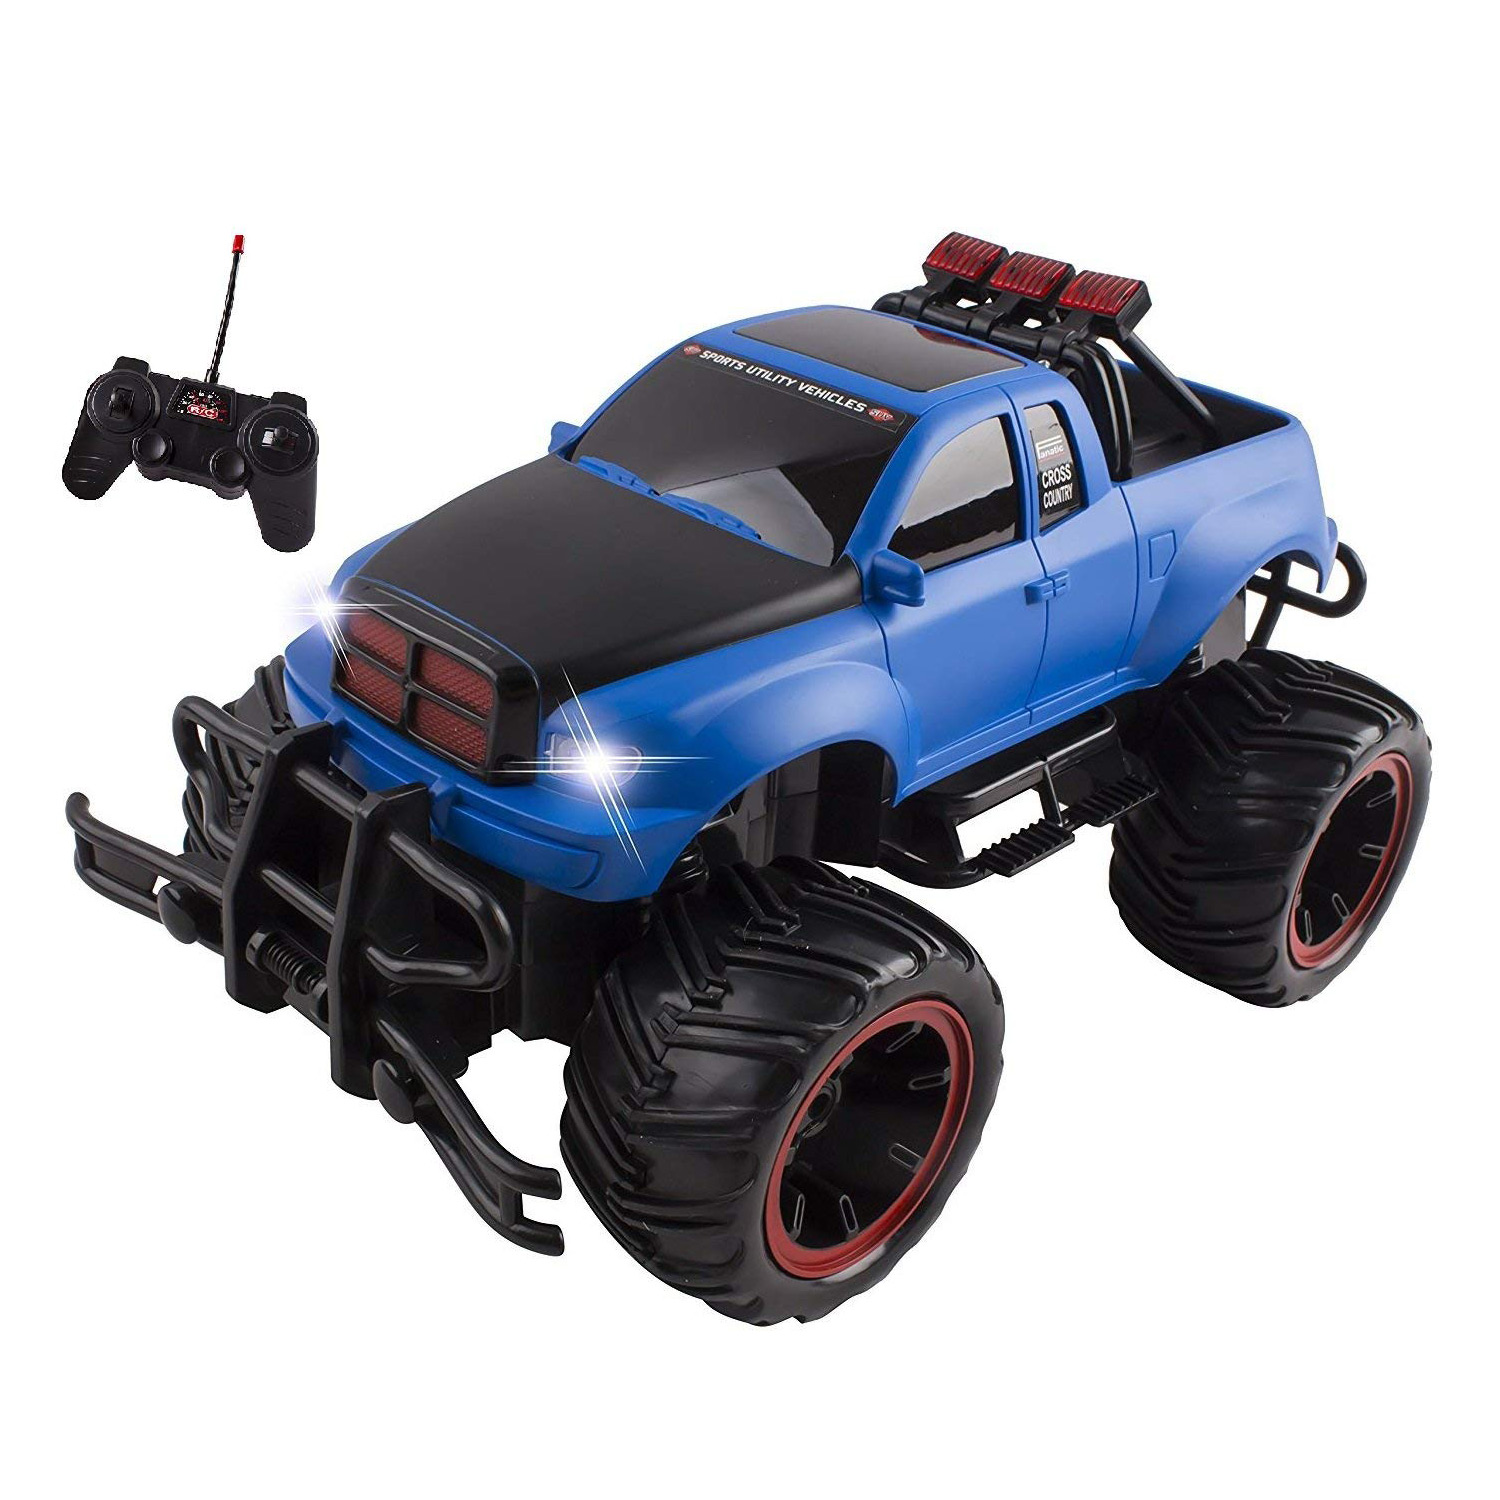 RC Monster Truck Buggy Remote Control Car RTR Electric Truggy Vehicle 1:16 Large Scale Working Suspension Perfect Kids Off-Road Race Toy (Blue)